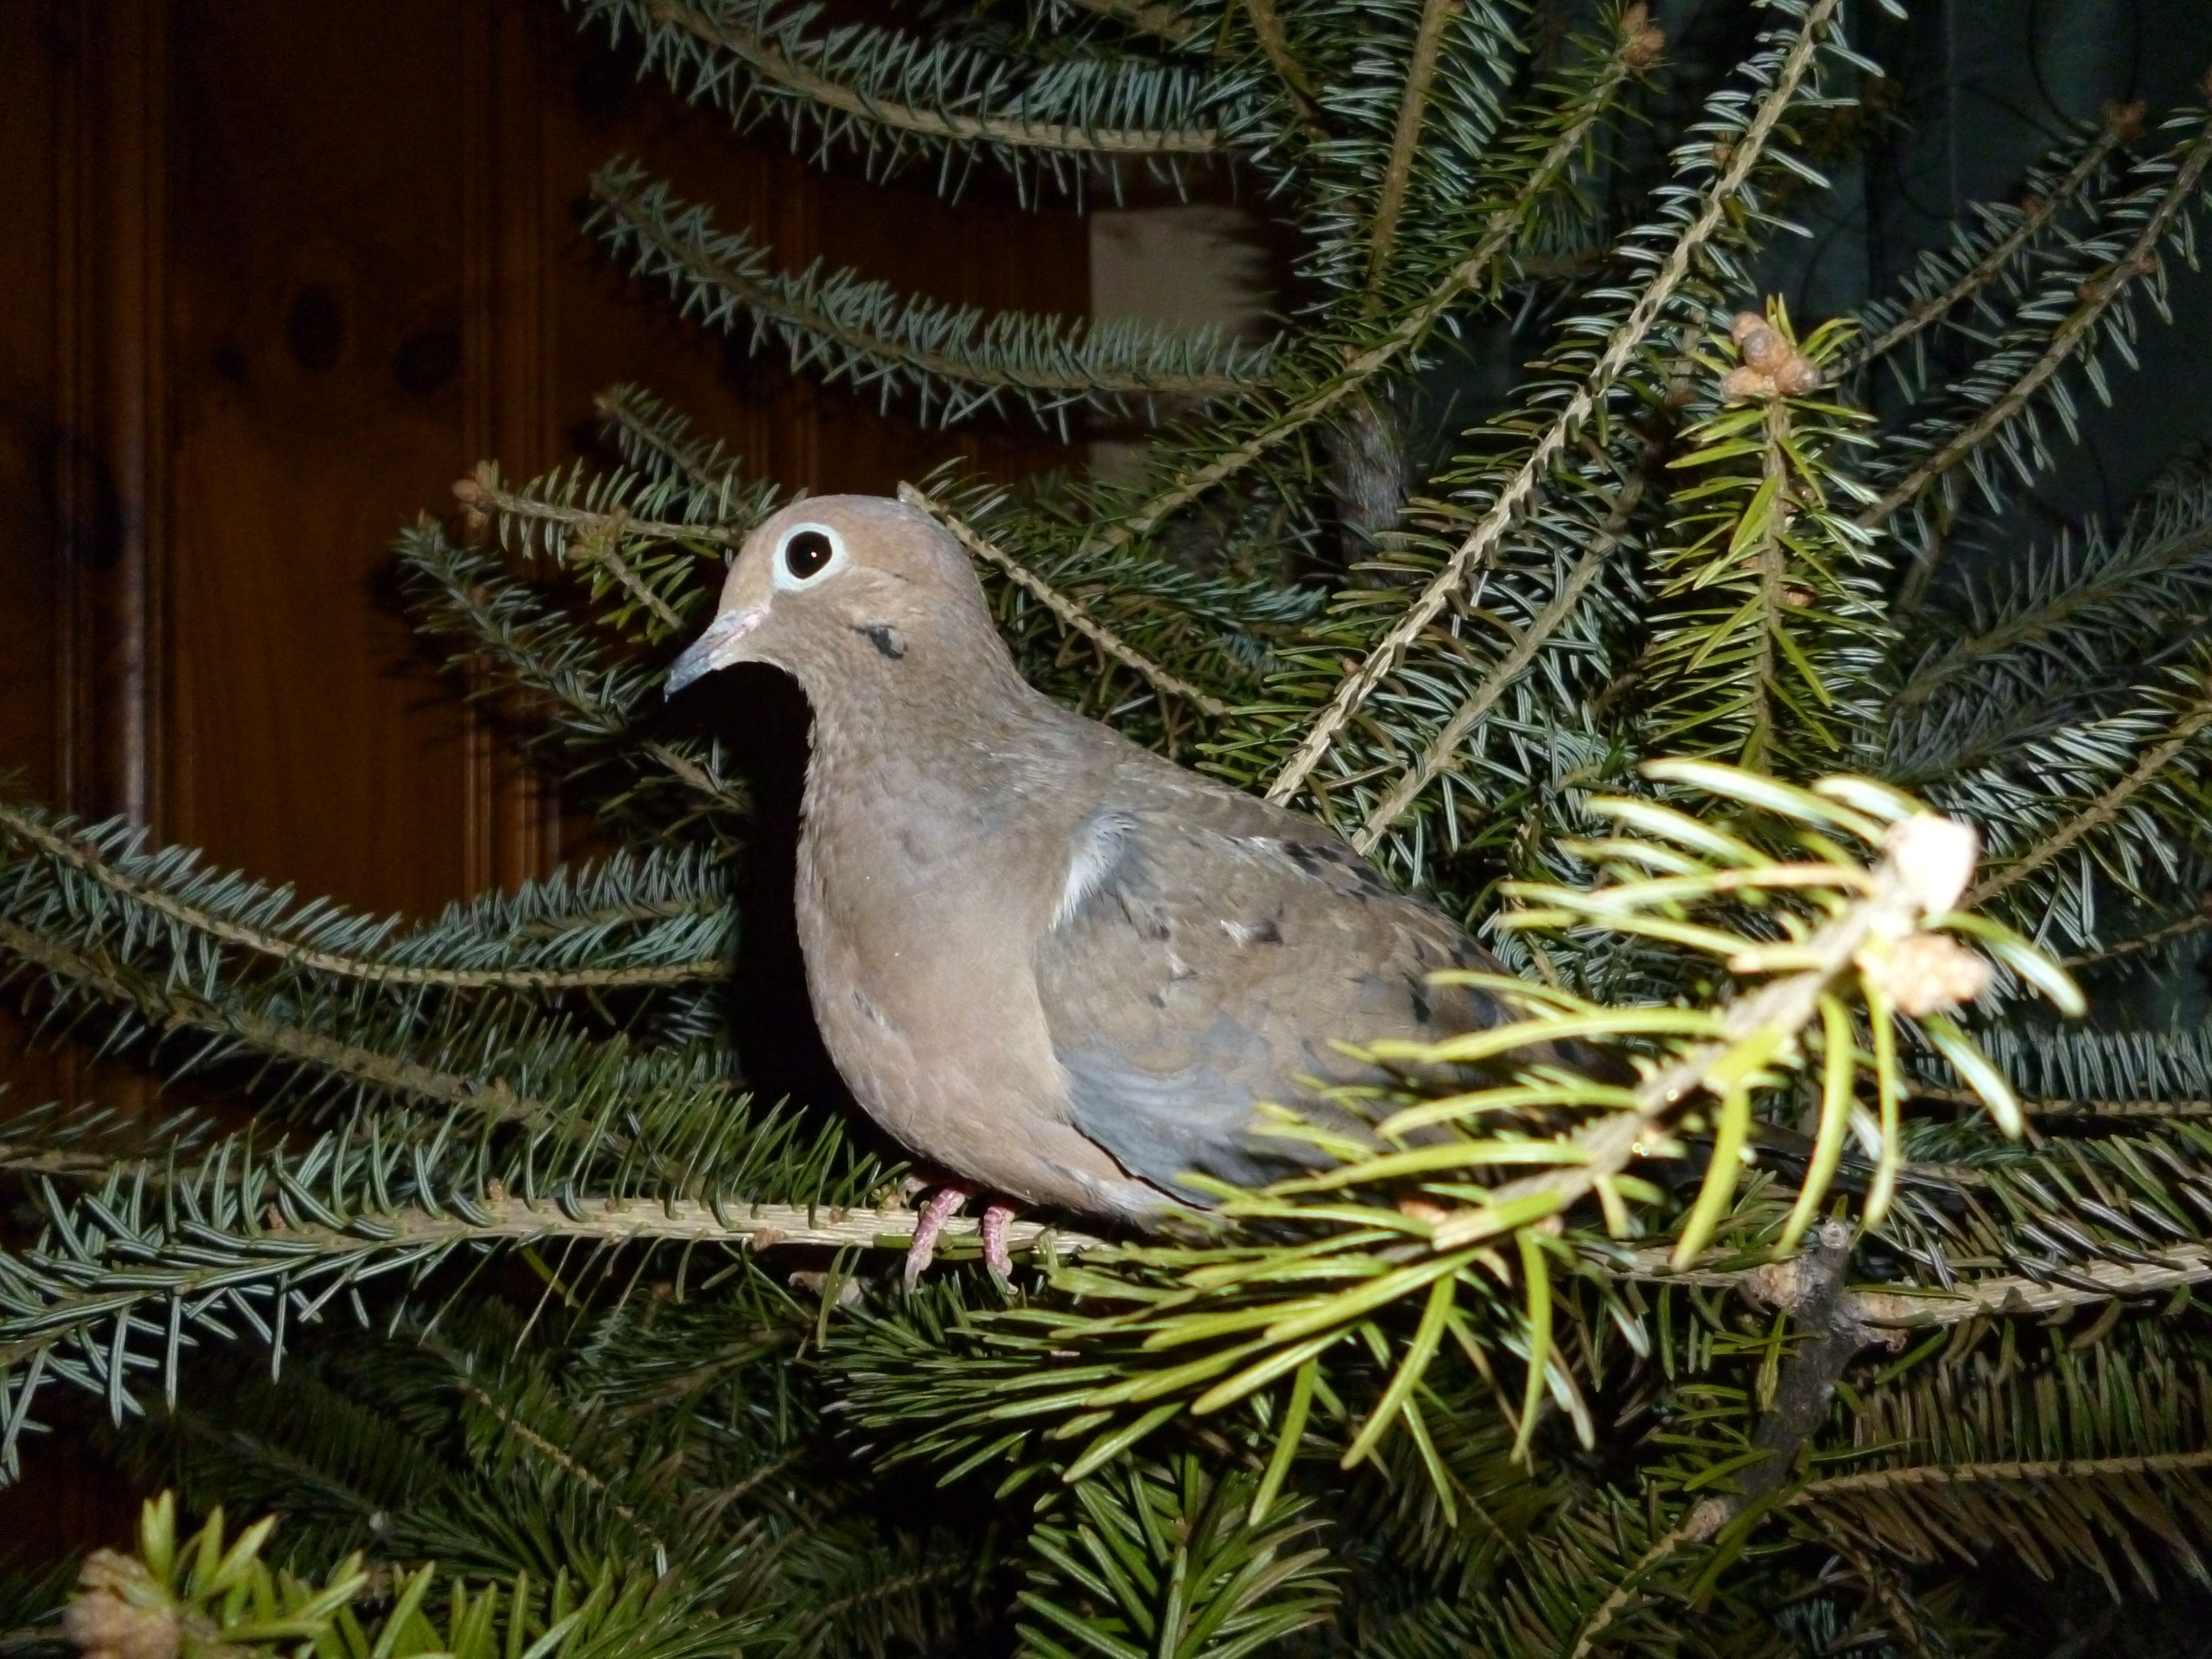 Mourning dove at christmas birds pinterest bird mourning dove at christmas buycottarizona